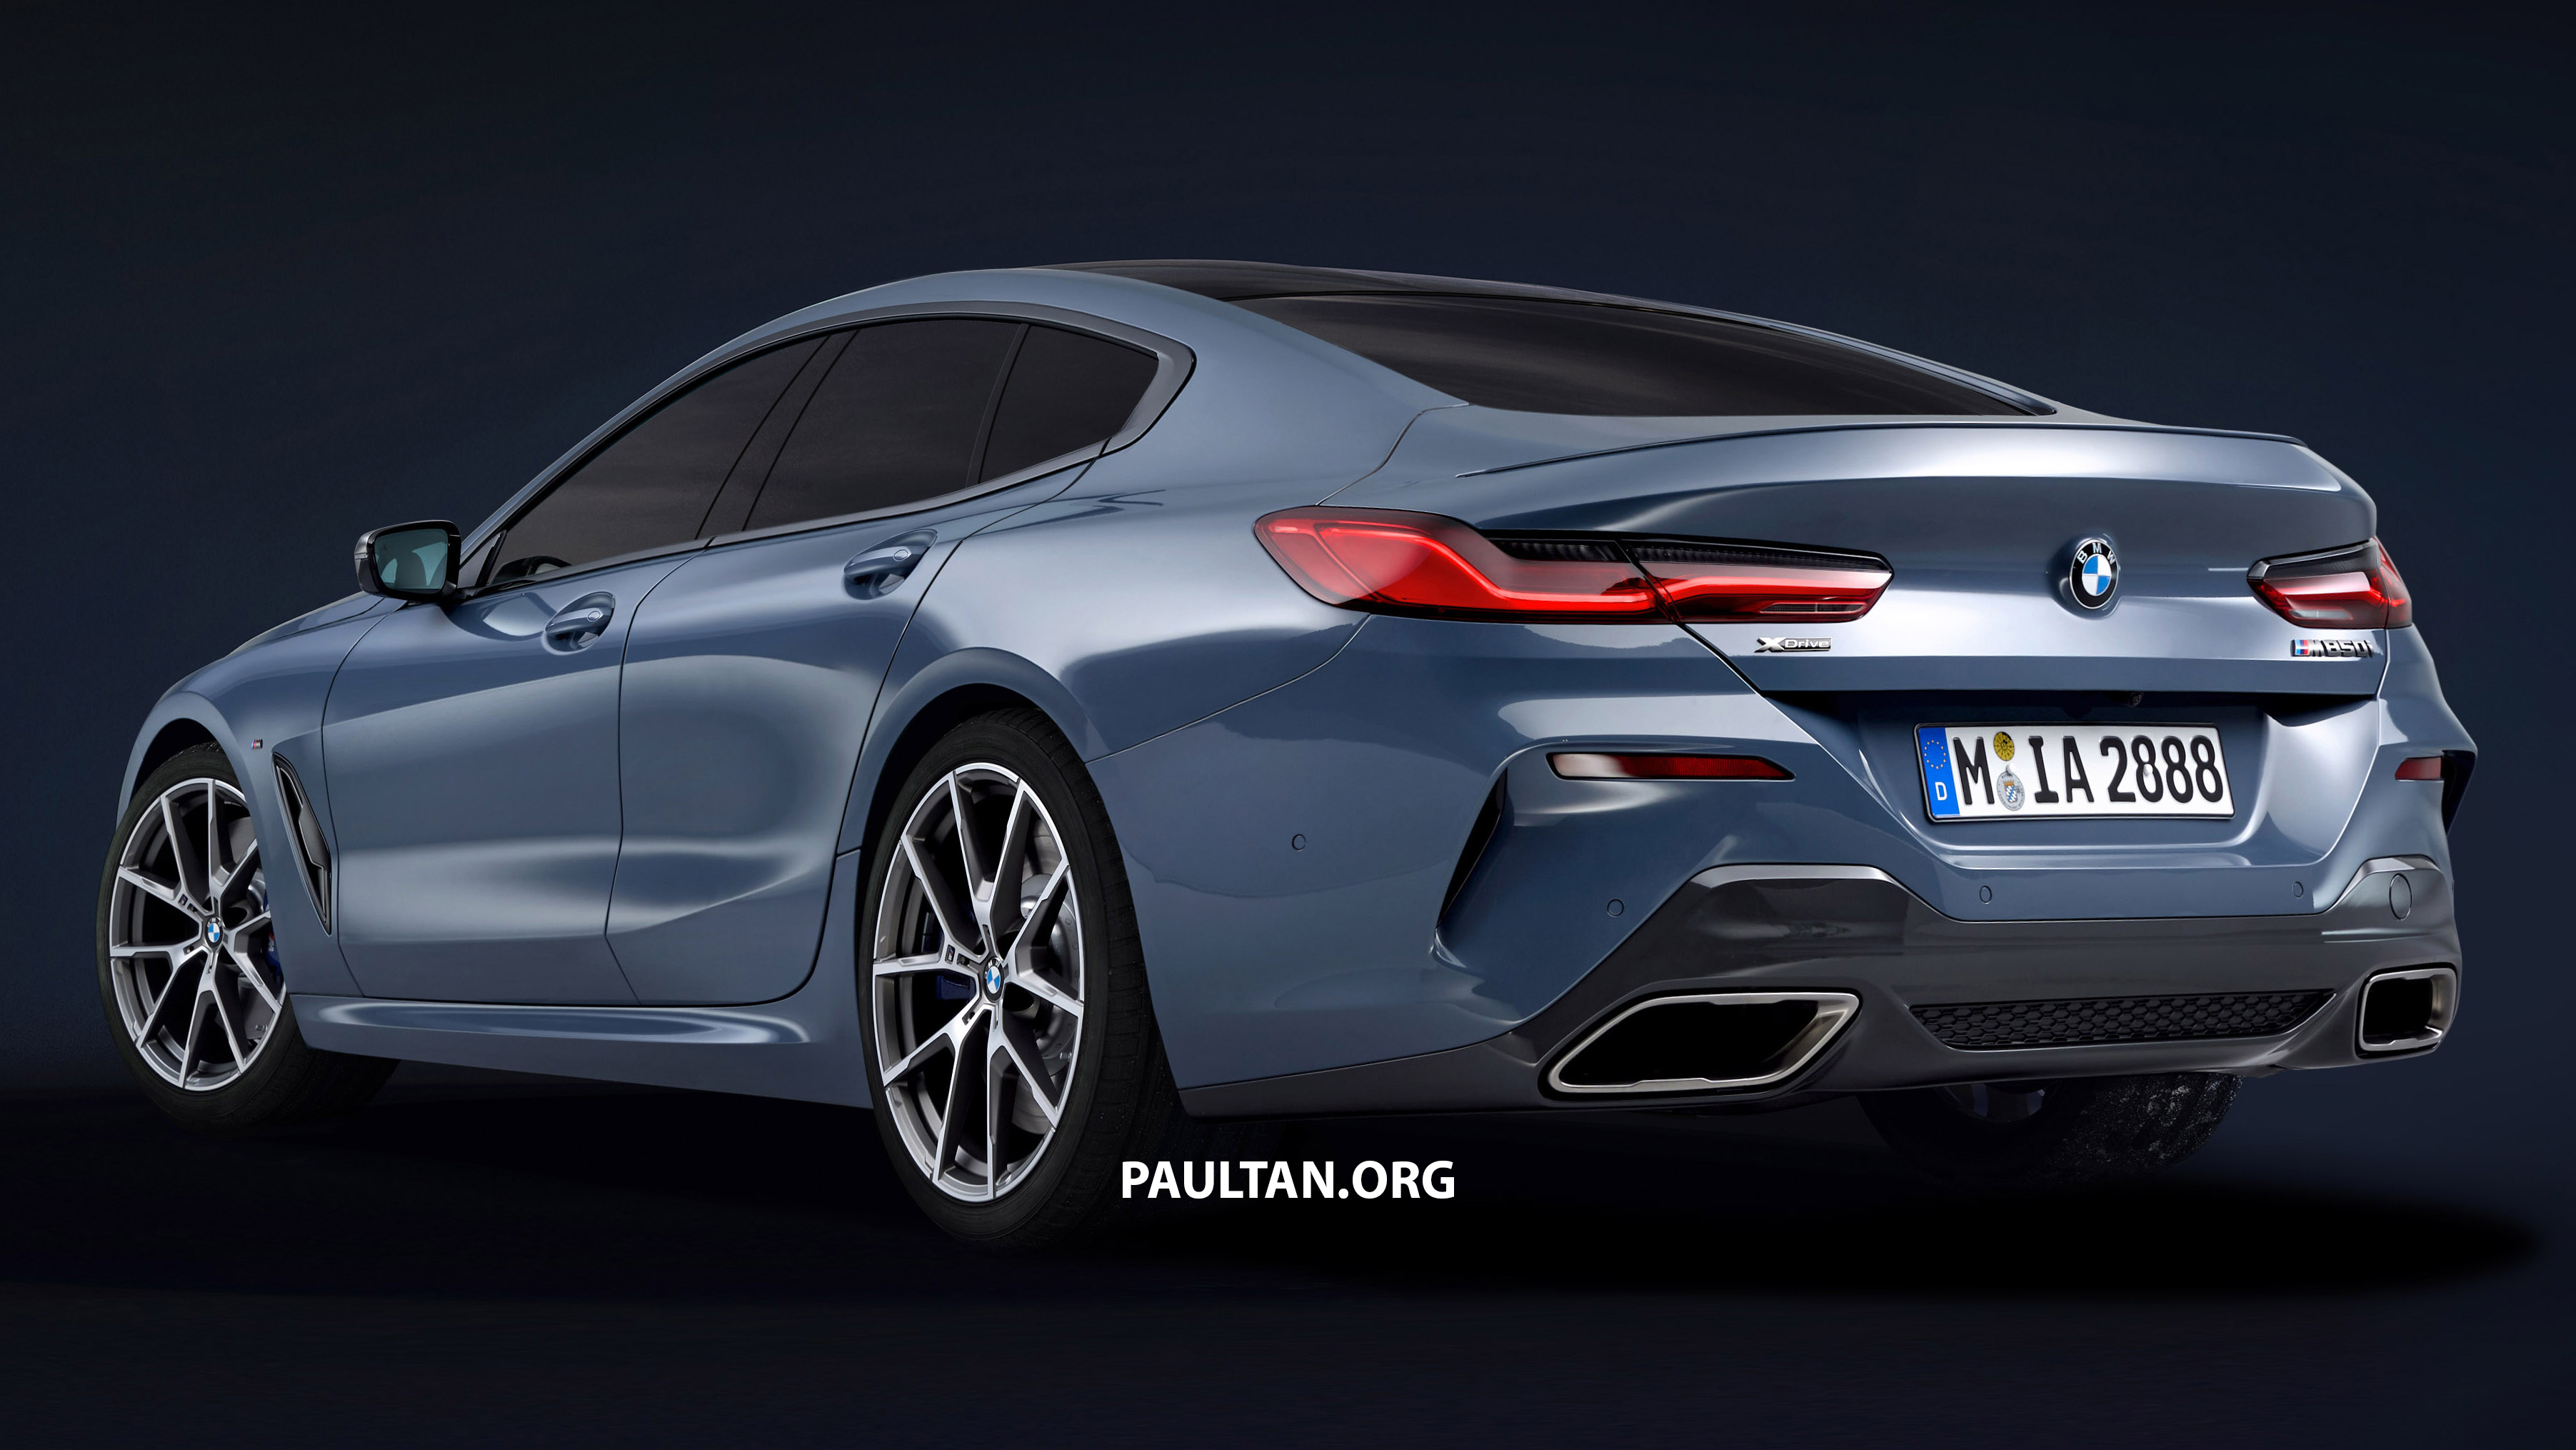 bmw 8 series gran coupe rendered yay or nay paul tan image 827797. Black Bedroom Furniture Sets. Home Design Ideas